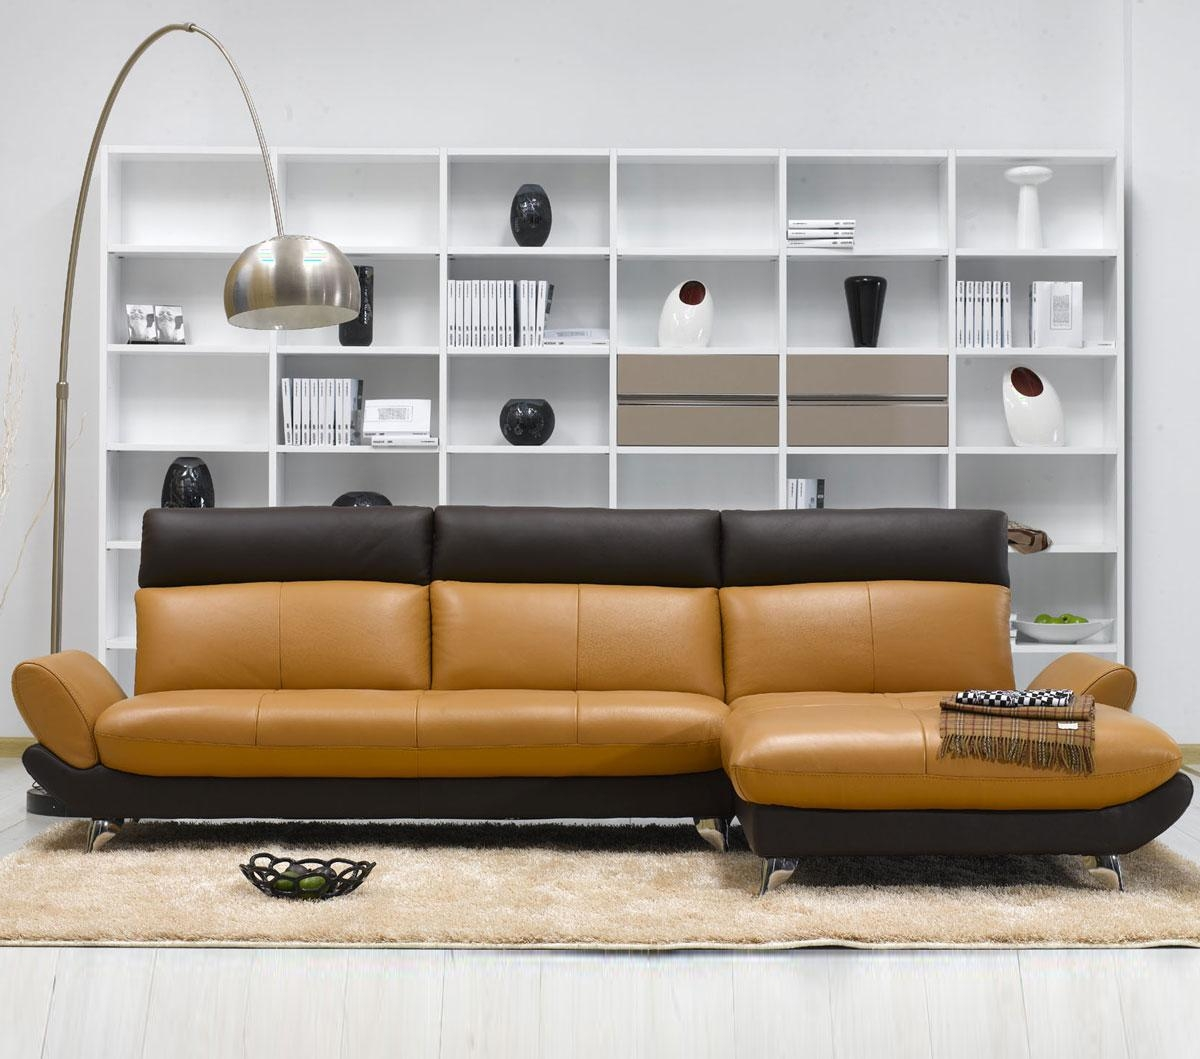 Tosh Furniture Modern Caramel/brown Leather Sectional Sofa – Flap Pertaining To Carmel Leather Sofas (Image 20 of 20)